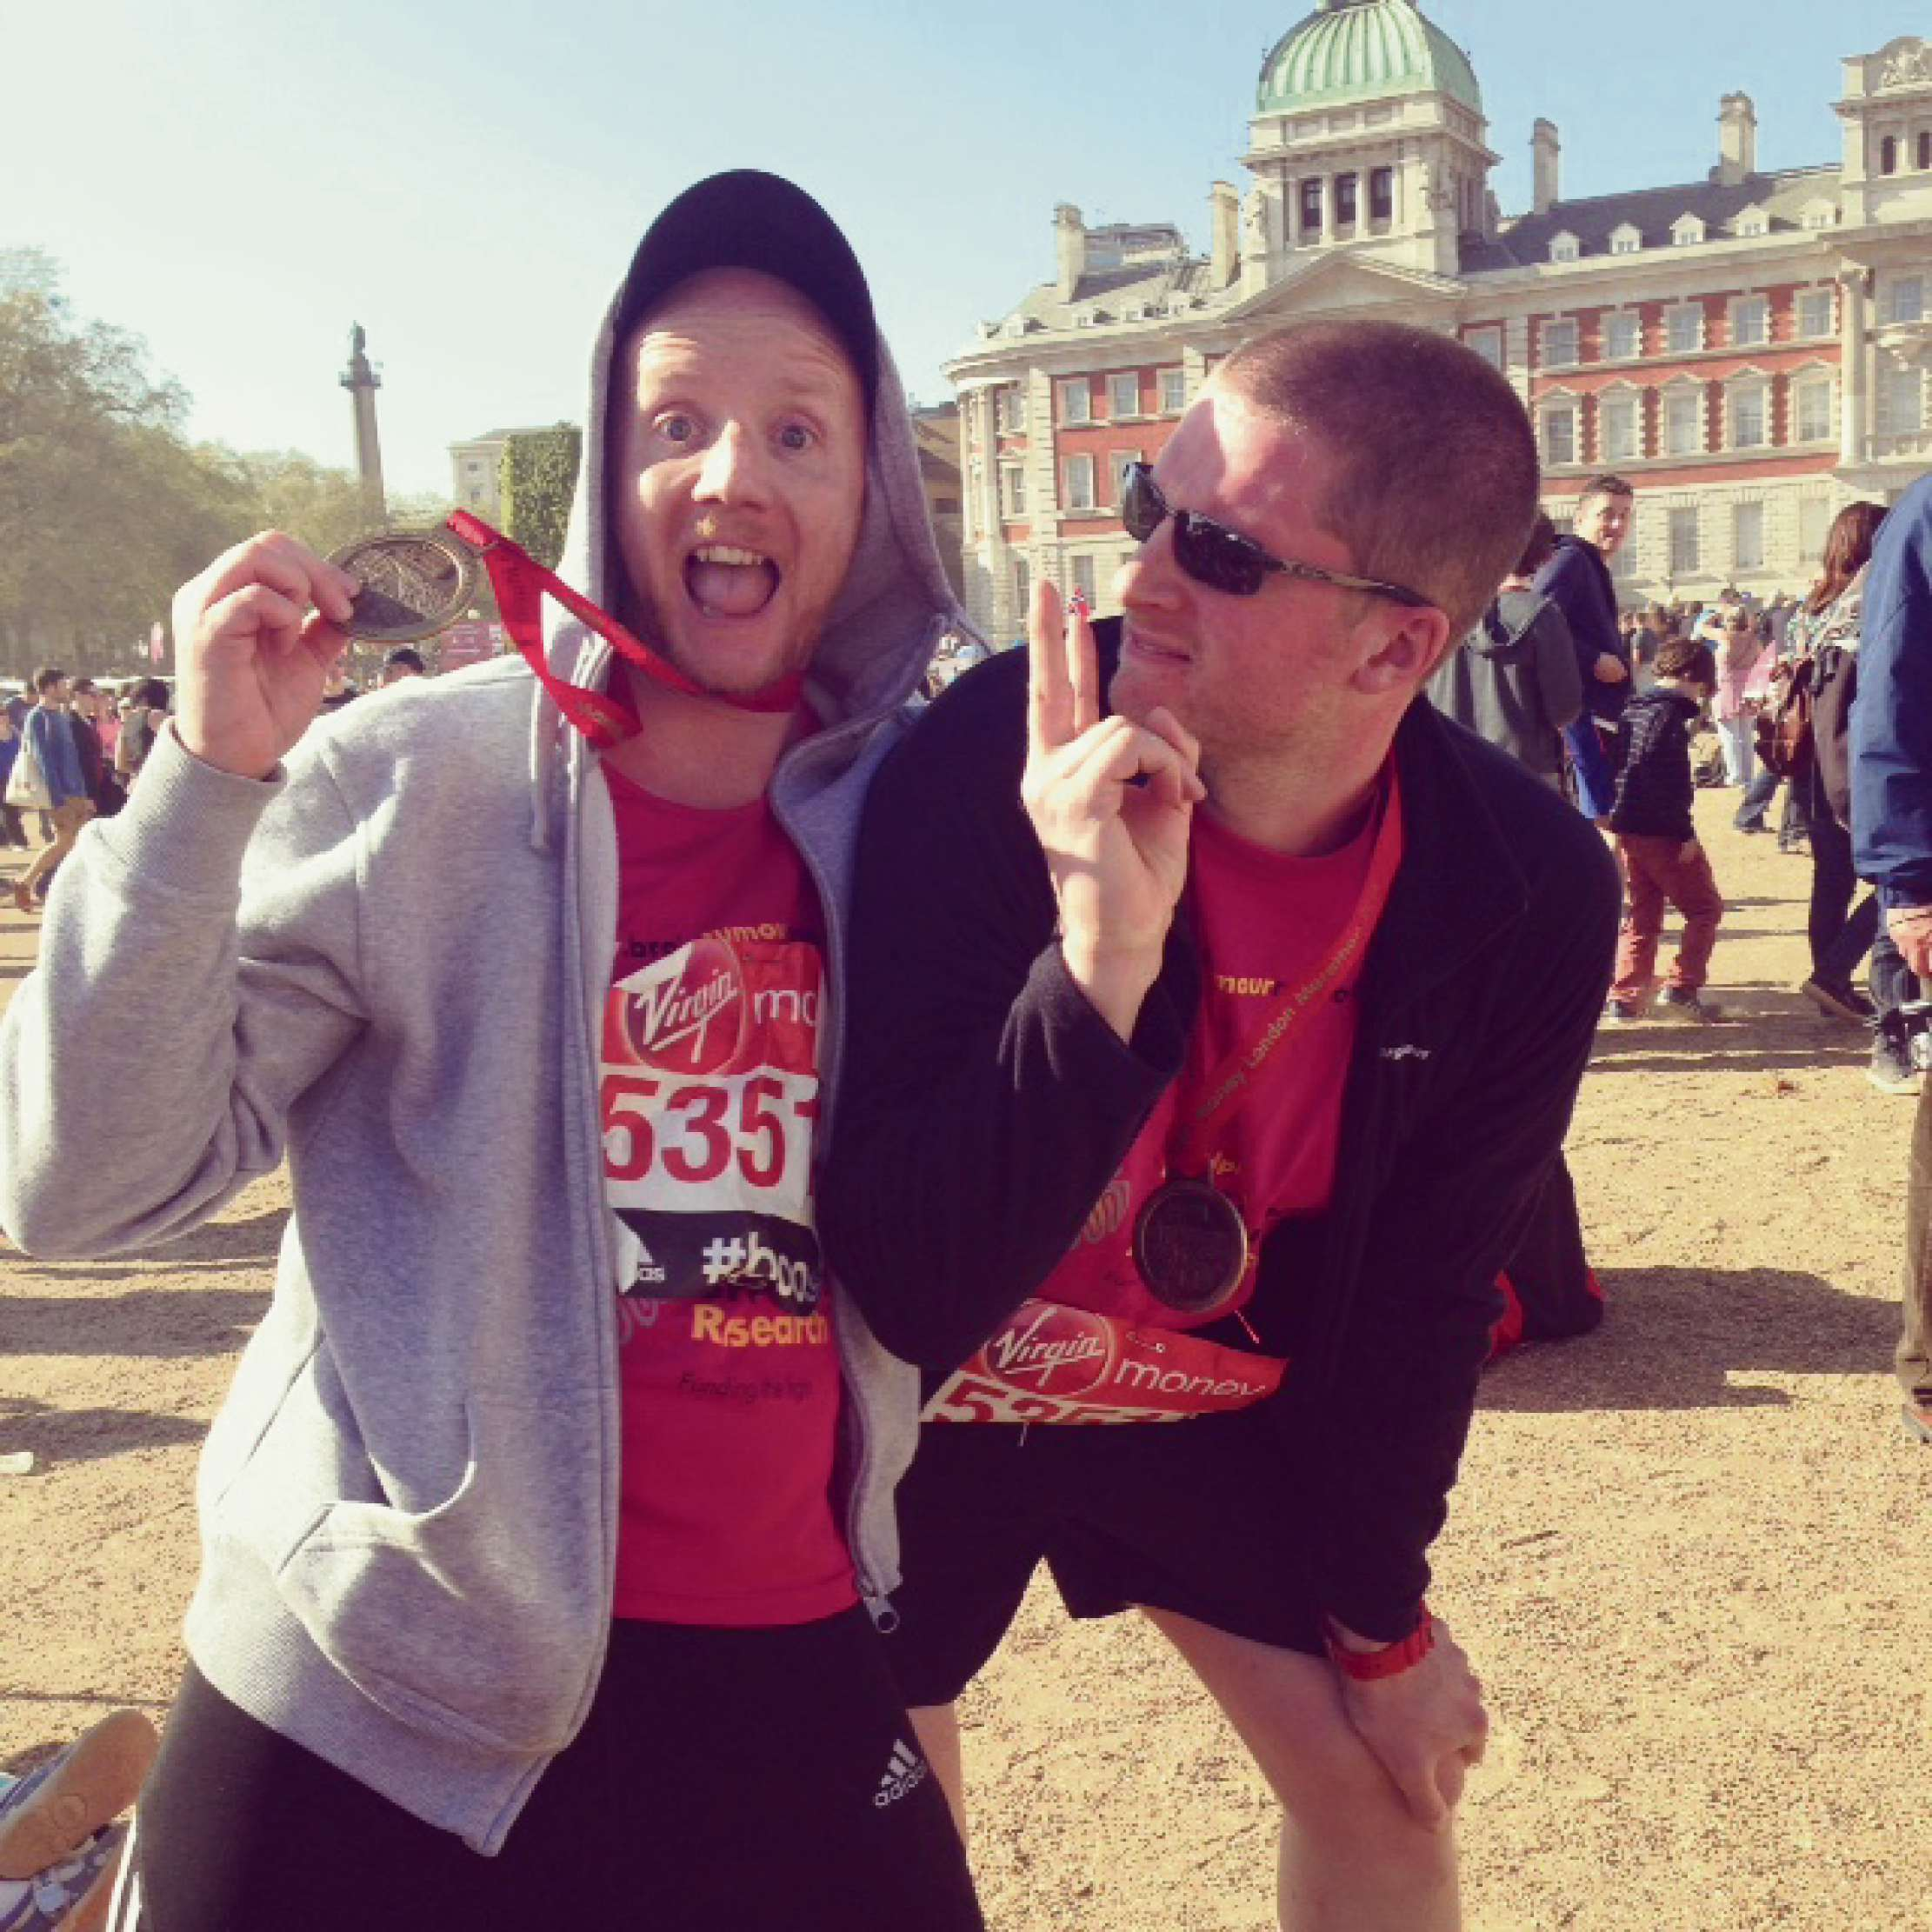 Ben goes the London Marathon distance for charity